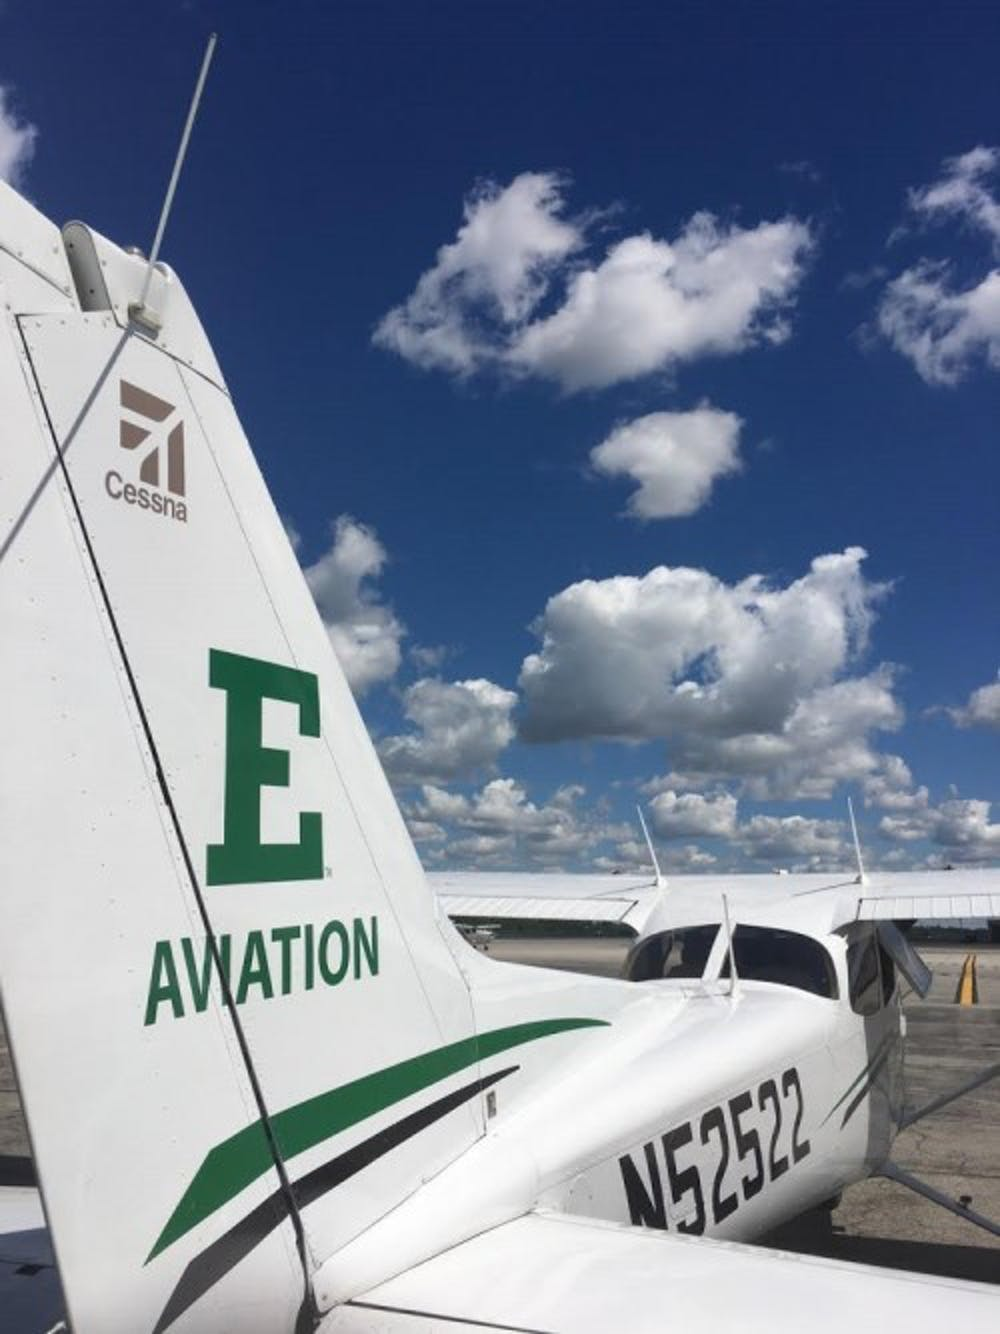 The national pilot shortage: an interview with EMU aviation student Anthony Castro